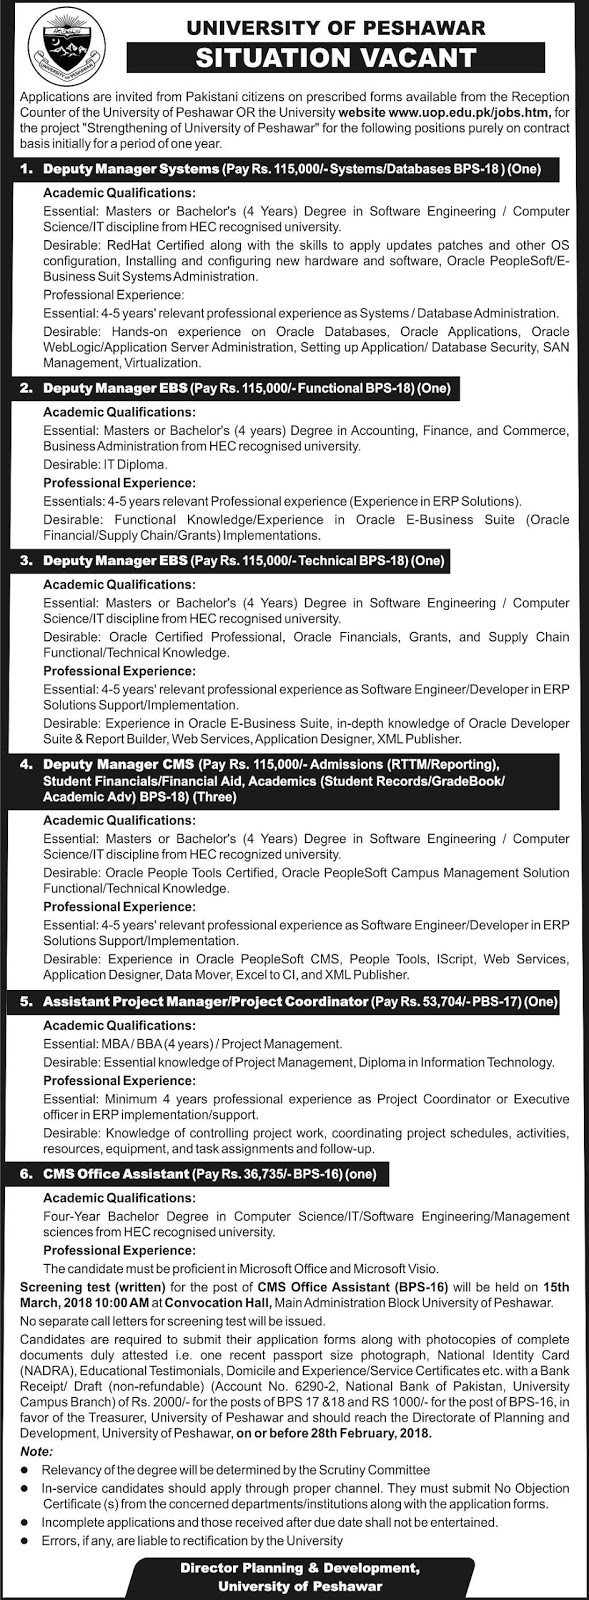 Latest Govt Jobs In University Of Peshawar February 2018 Vacancies